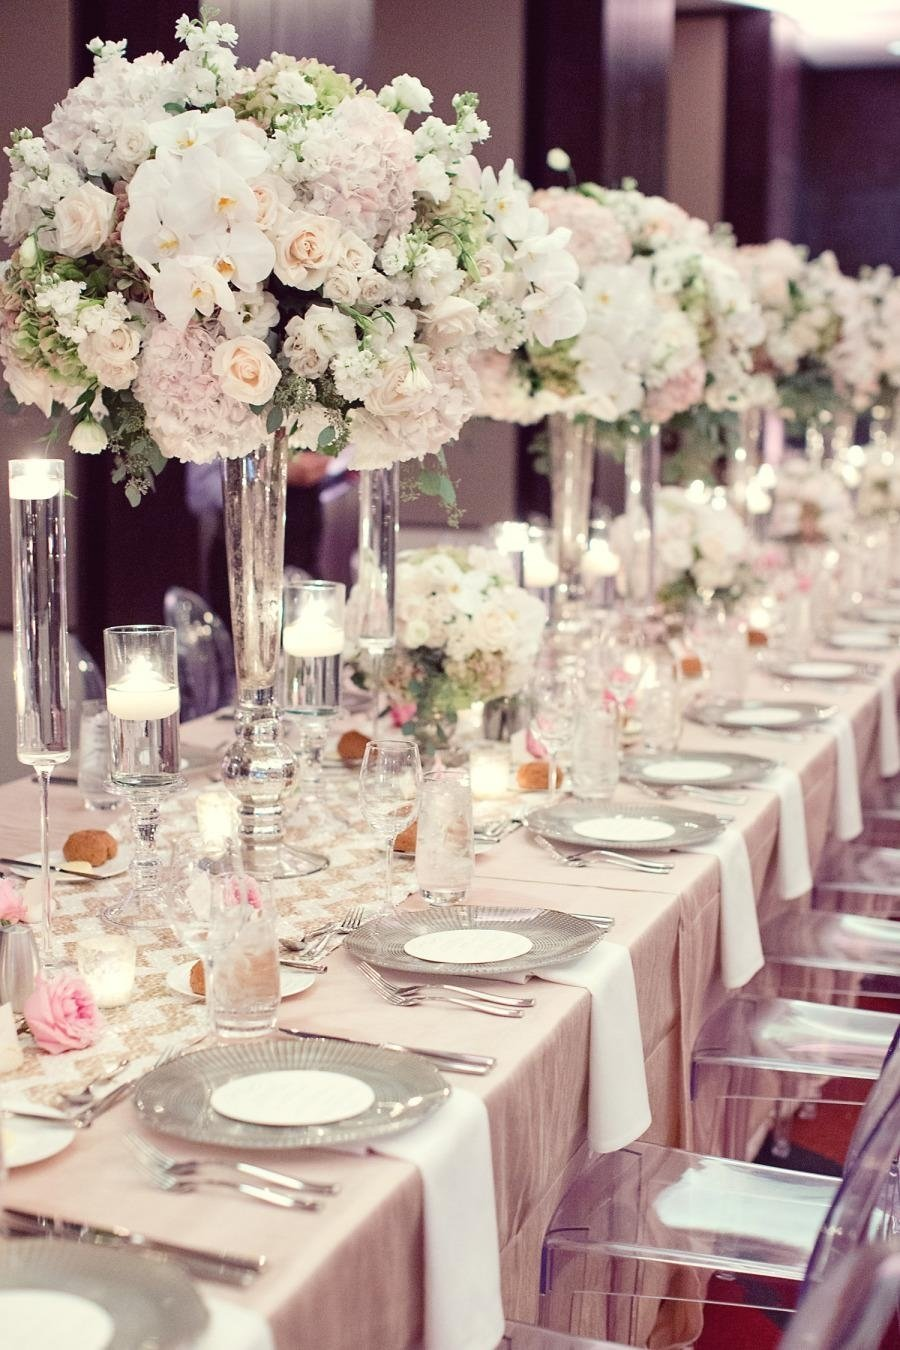 10 Unique Wedding Flowers And Reception Ideas finest flower decorations for wedding reception on decorations with 2020